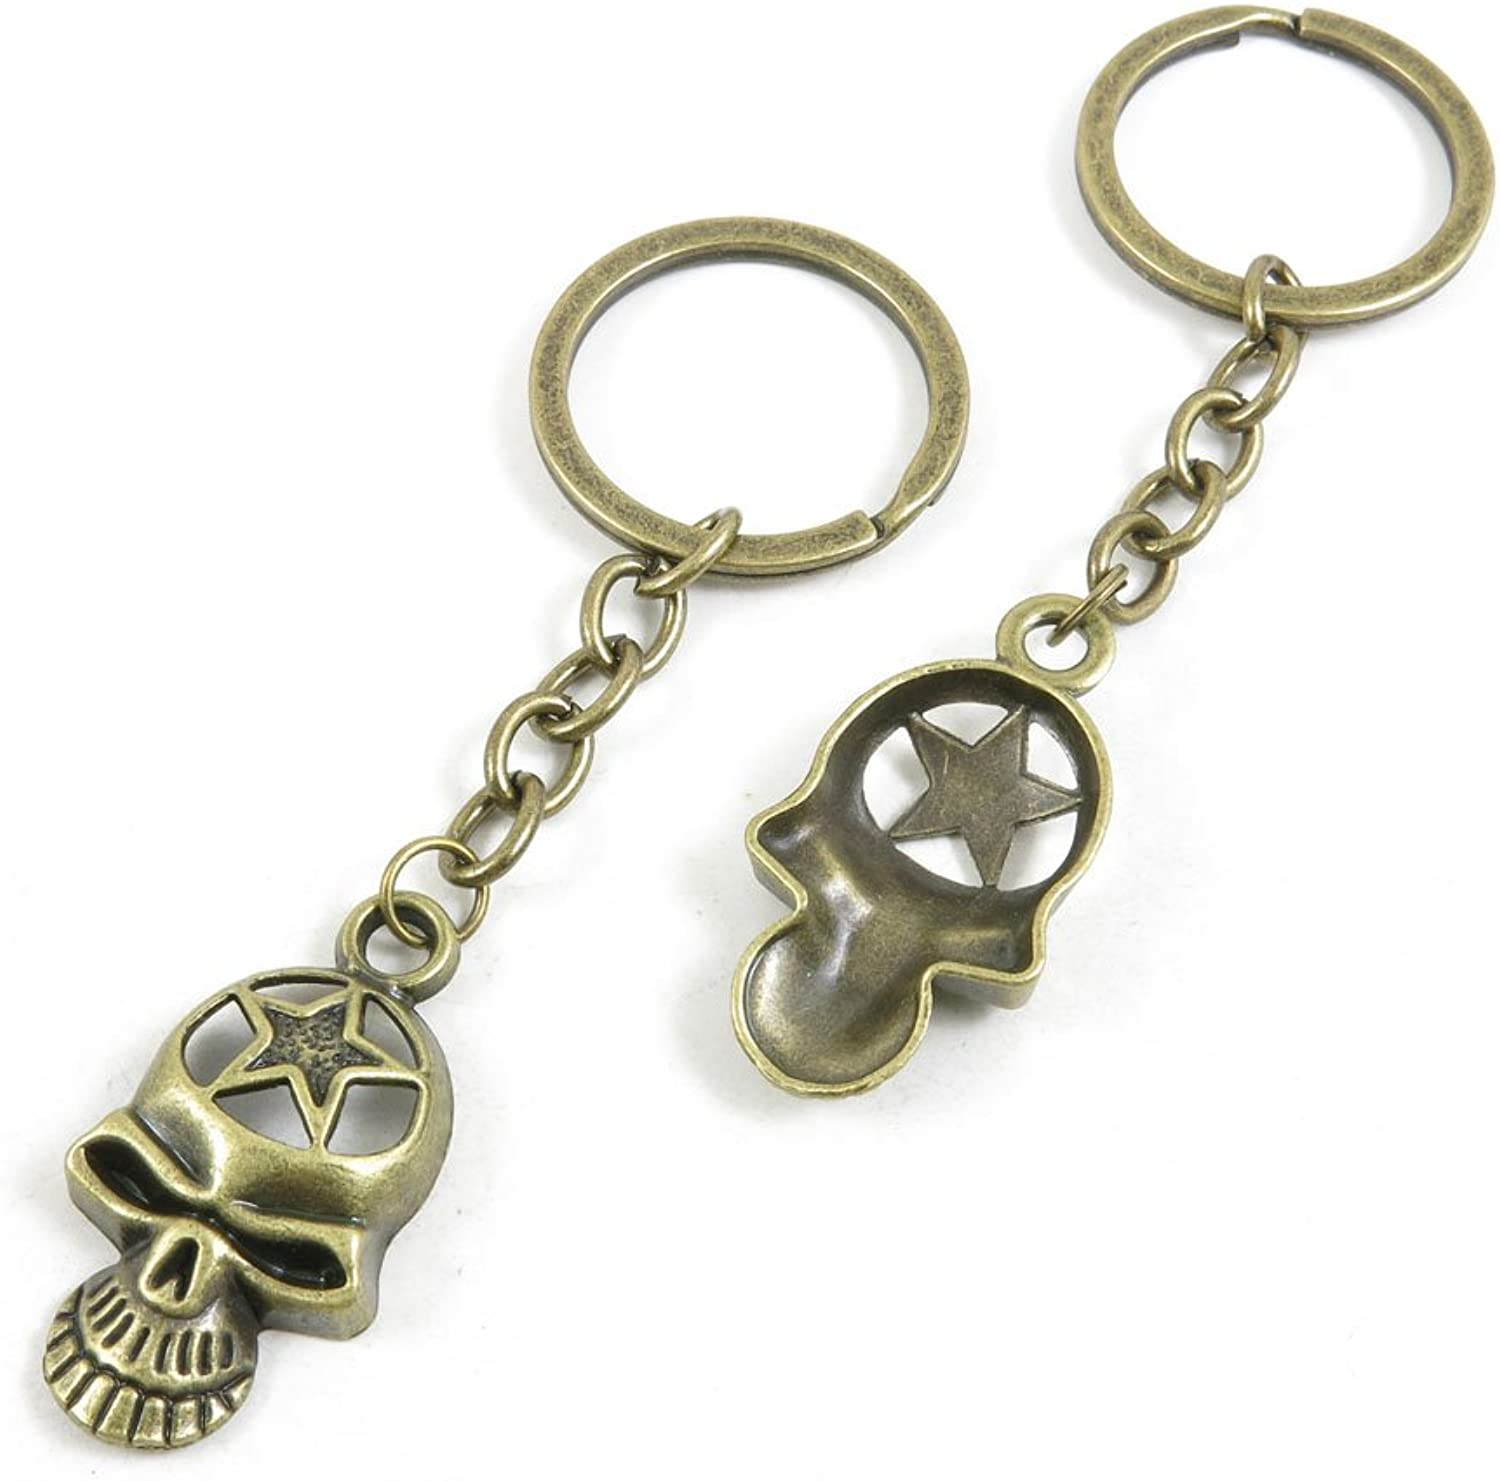 160 Pieces Fashion Jewelry Keyring Keychain Door Car Key Tag Ring Chain Supplier Supply Wholesale Bulk Lots M6GV1 Star Skull